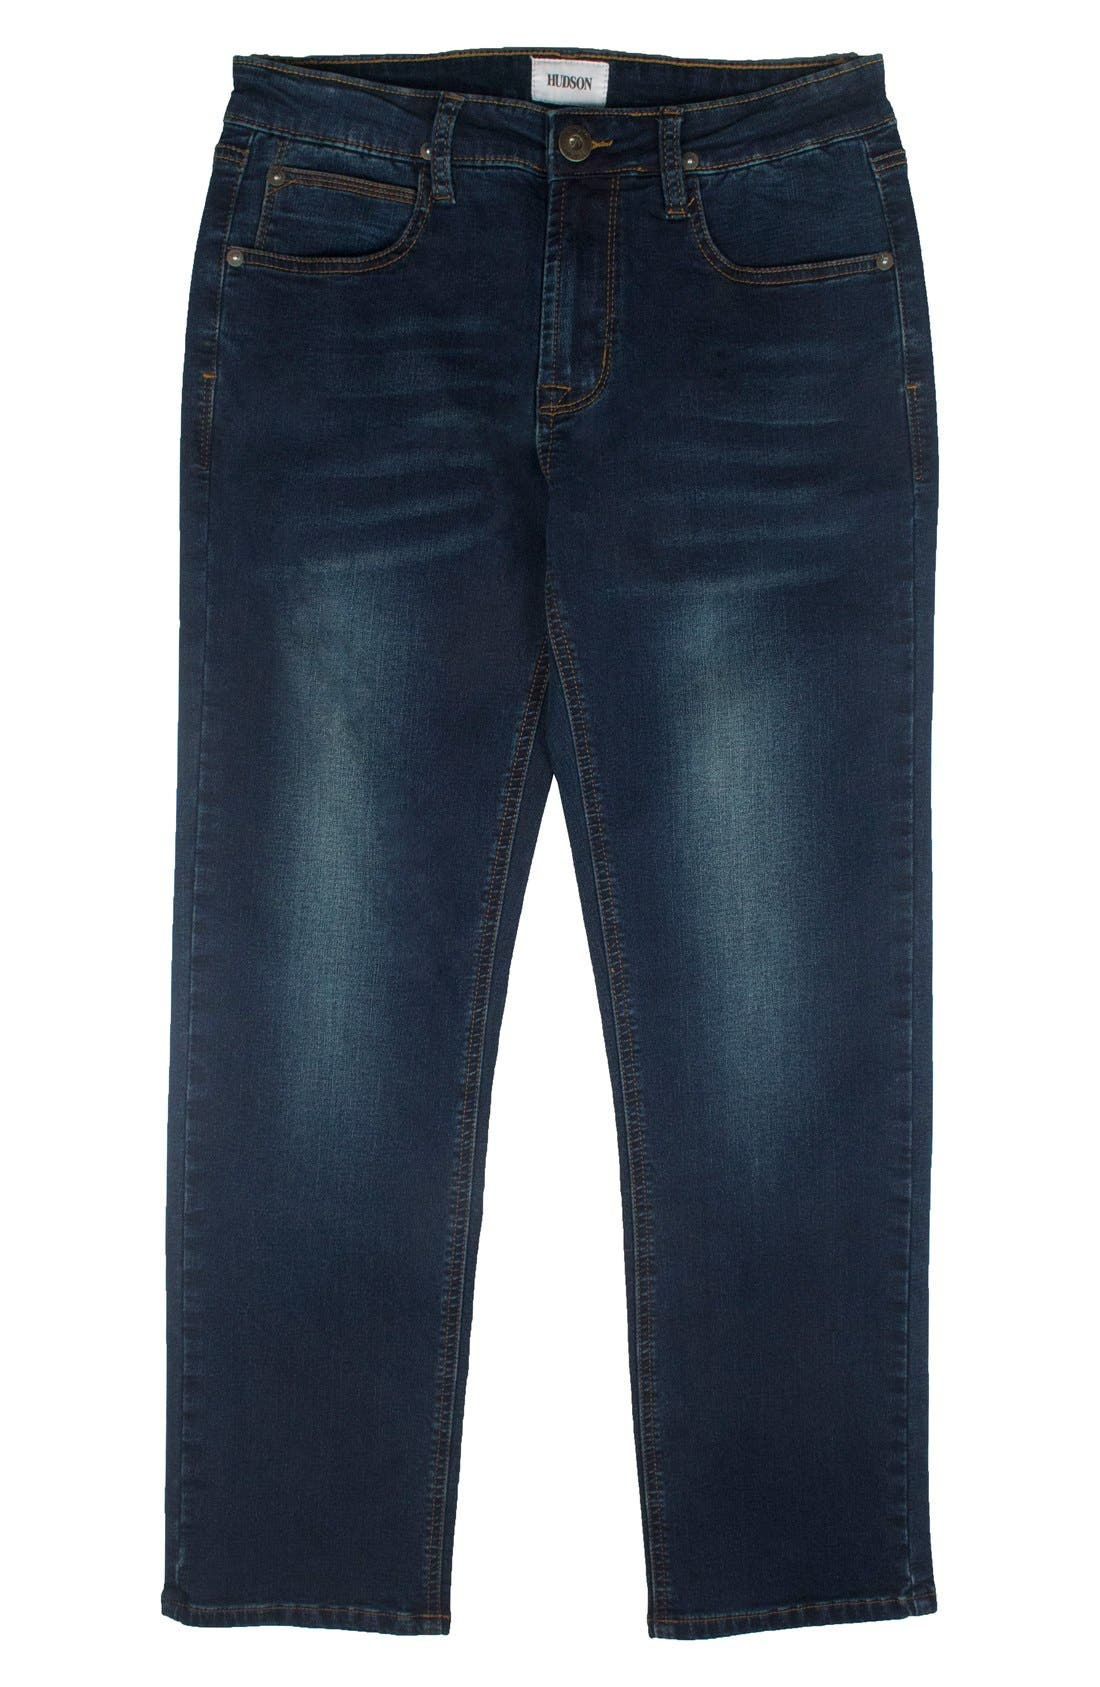 Jagger Straight Leg Jeans,                             Main thumbnail 1, color,                             Gritty Grass